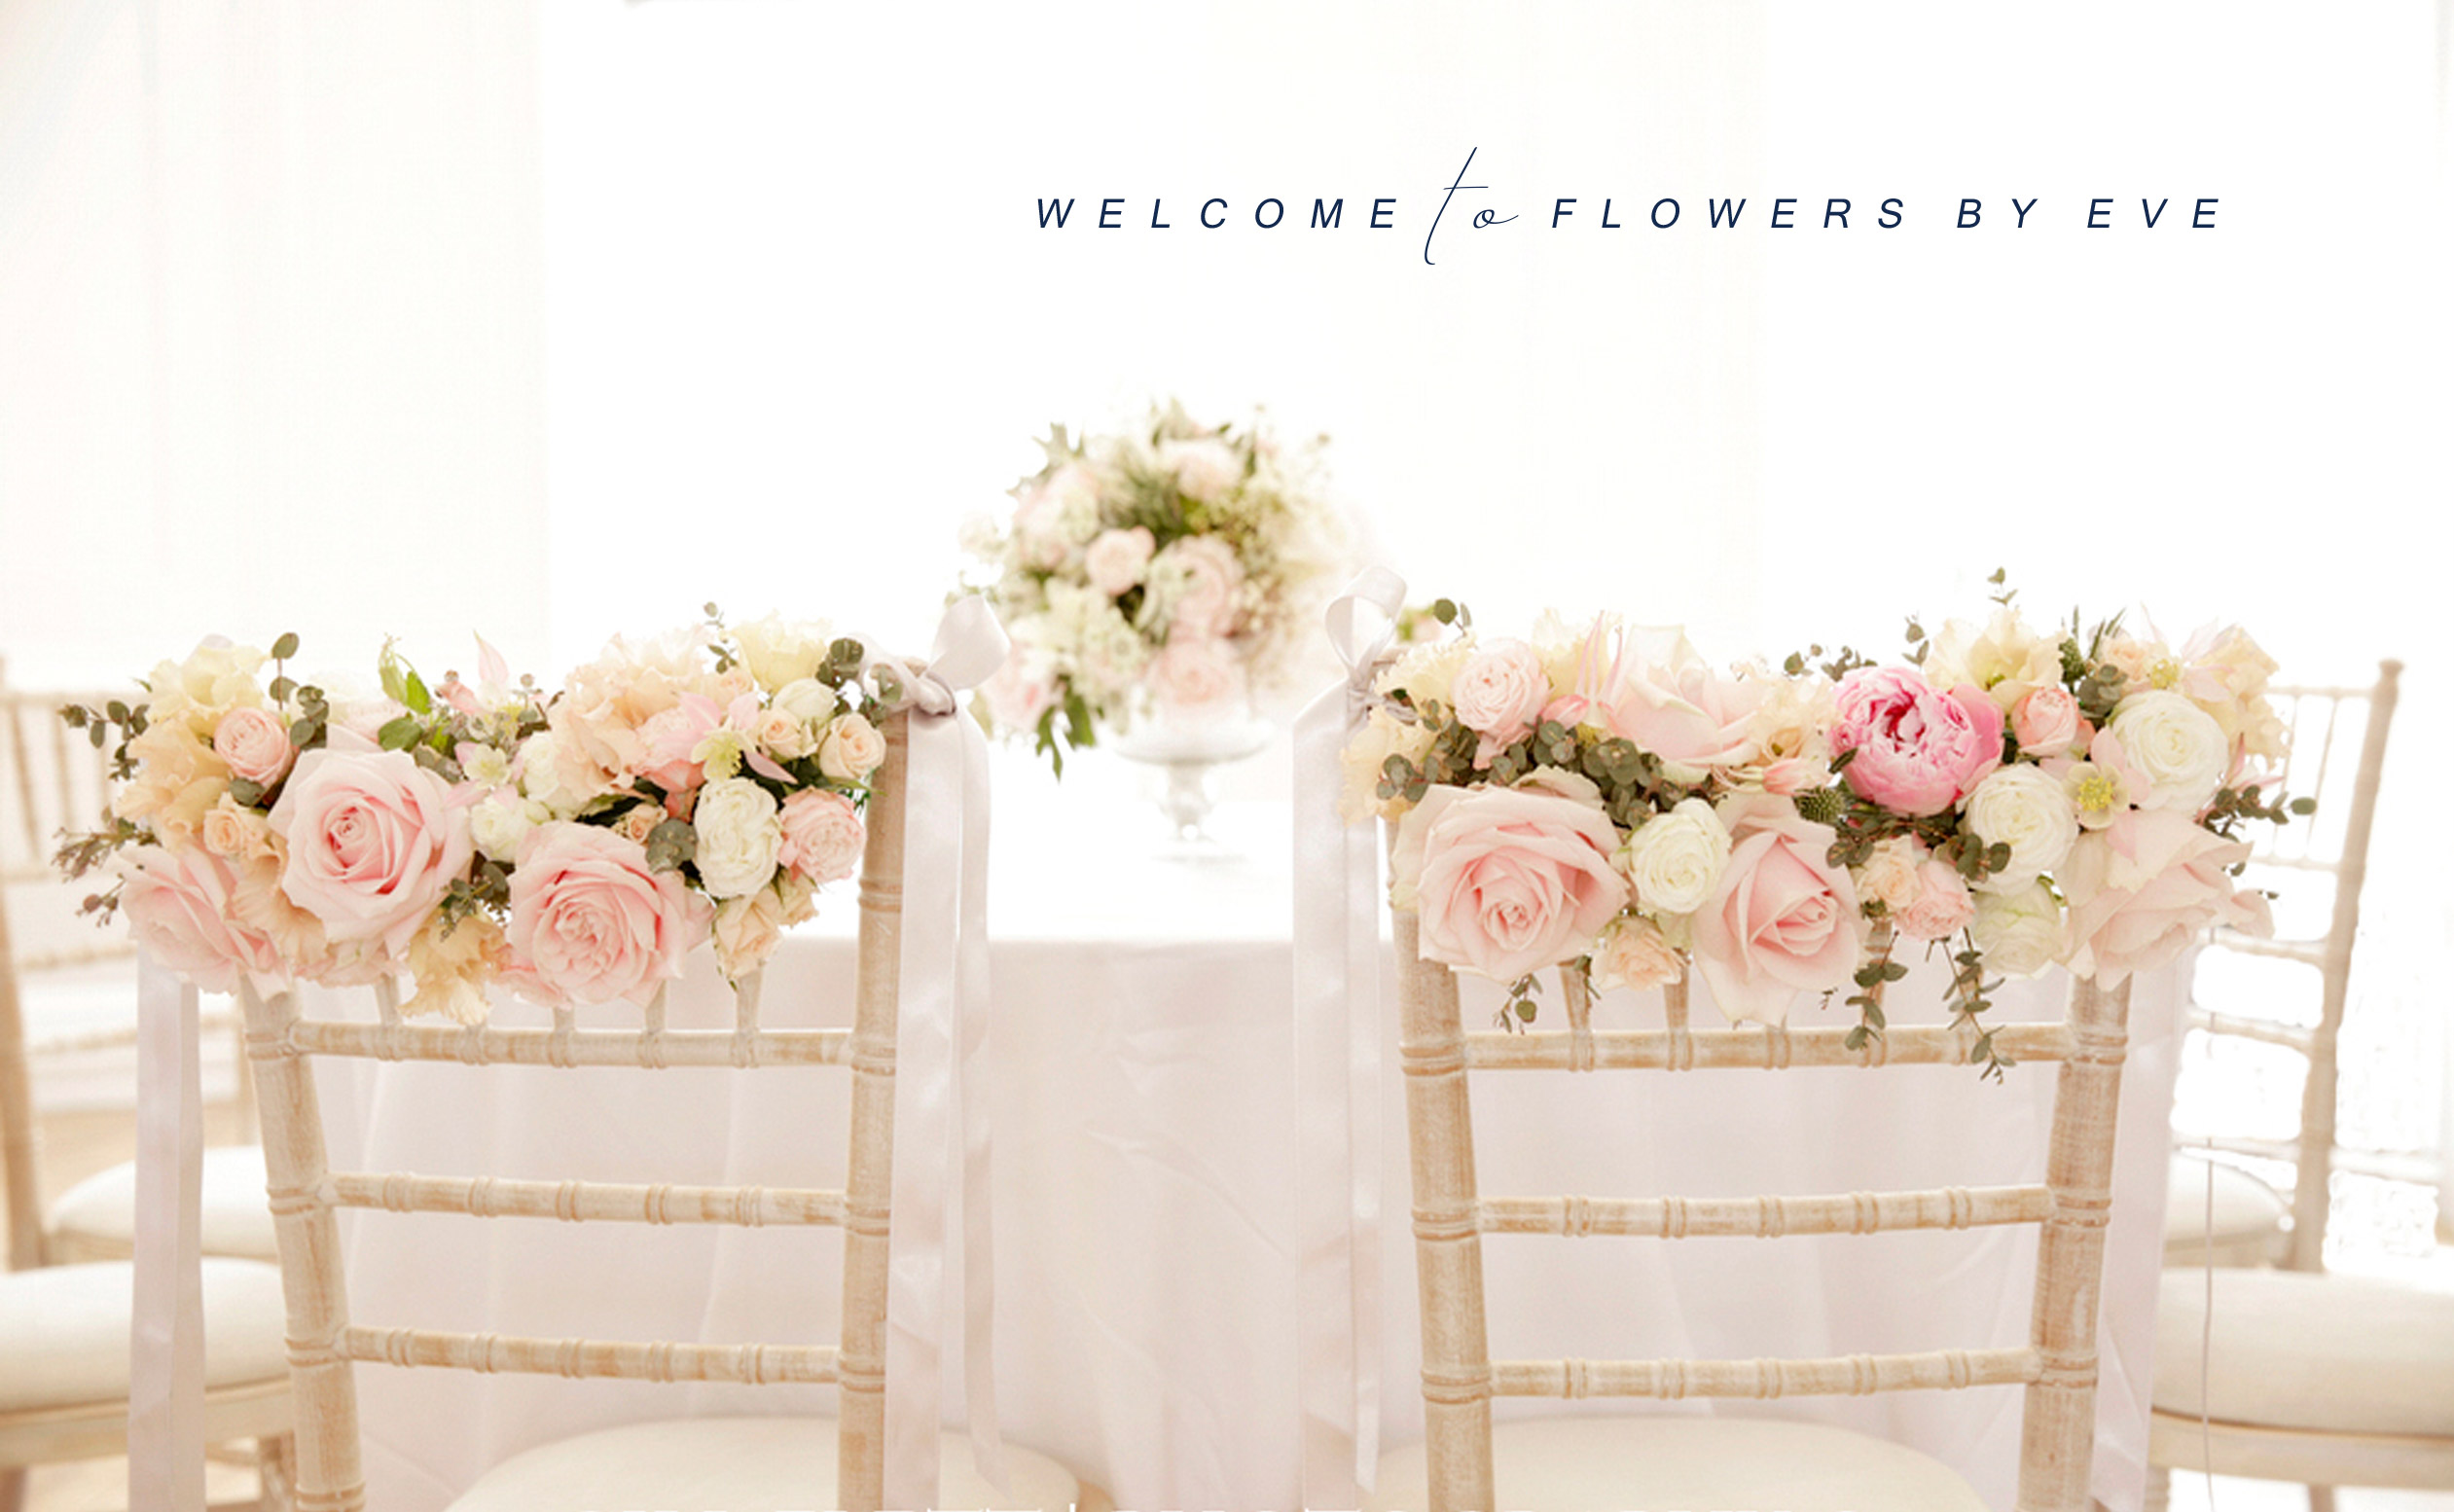 welcome to flowers by eve - slider image